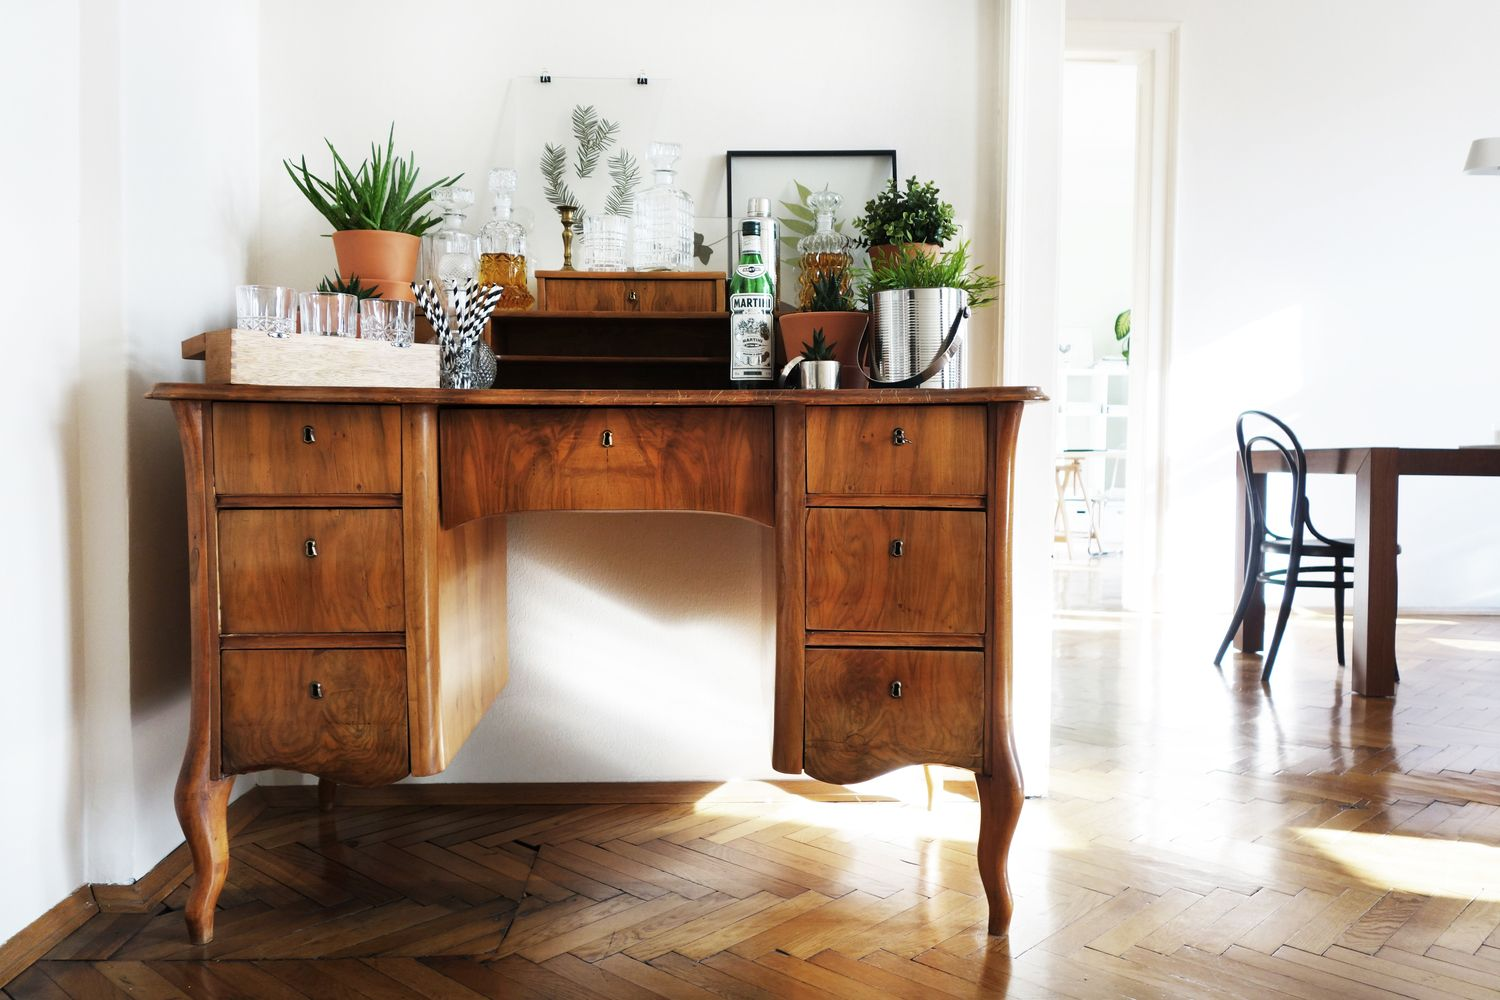 My Personal House Bar | Graz and Interiors